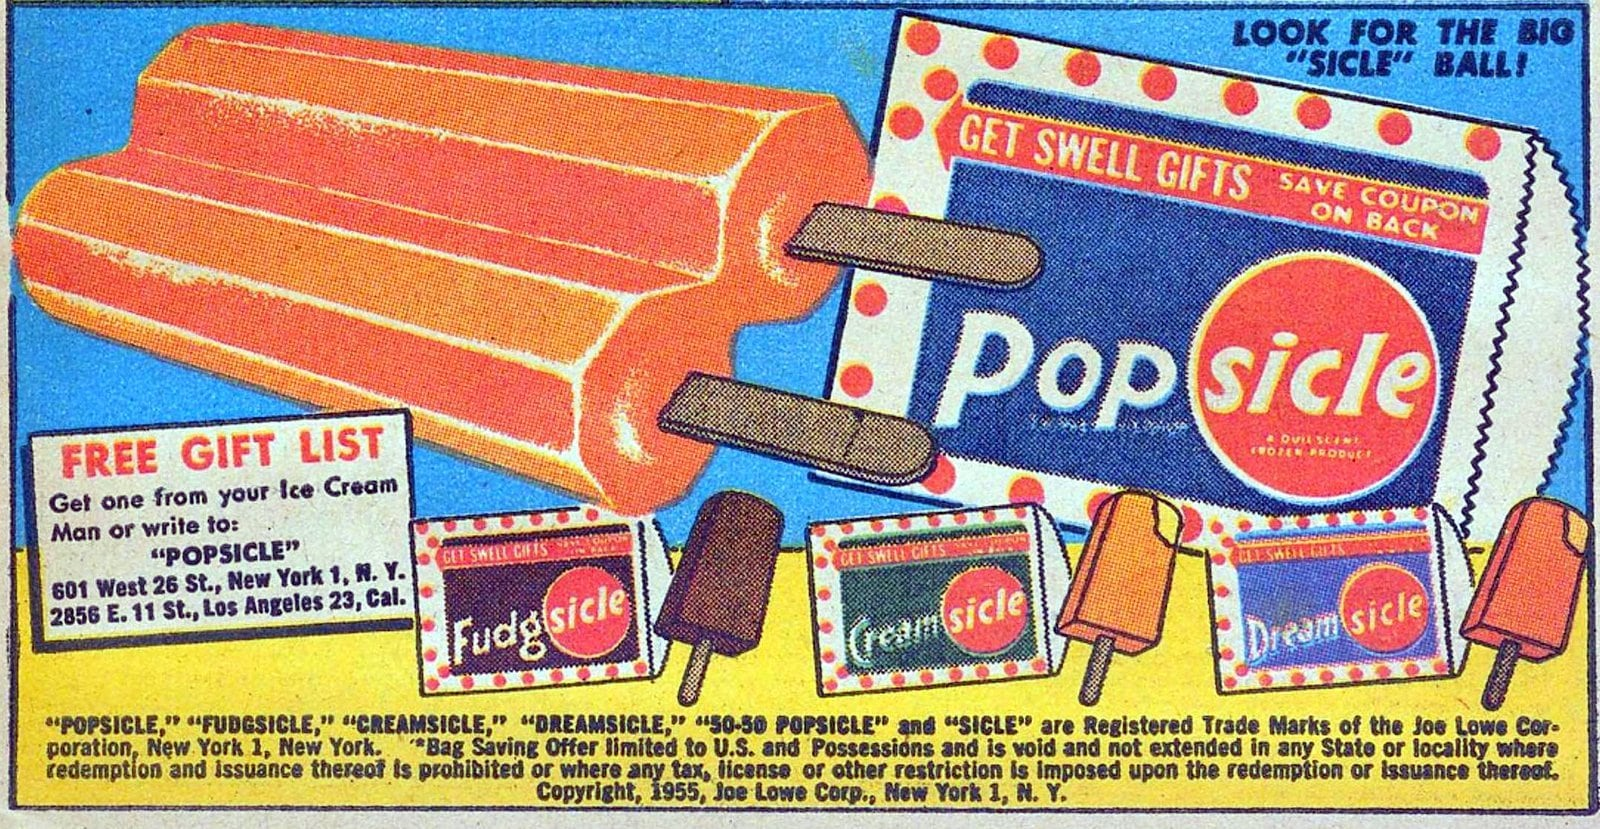 Vintage orange popsicle comic book ad from 1955